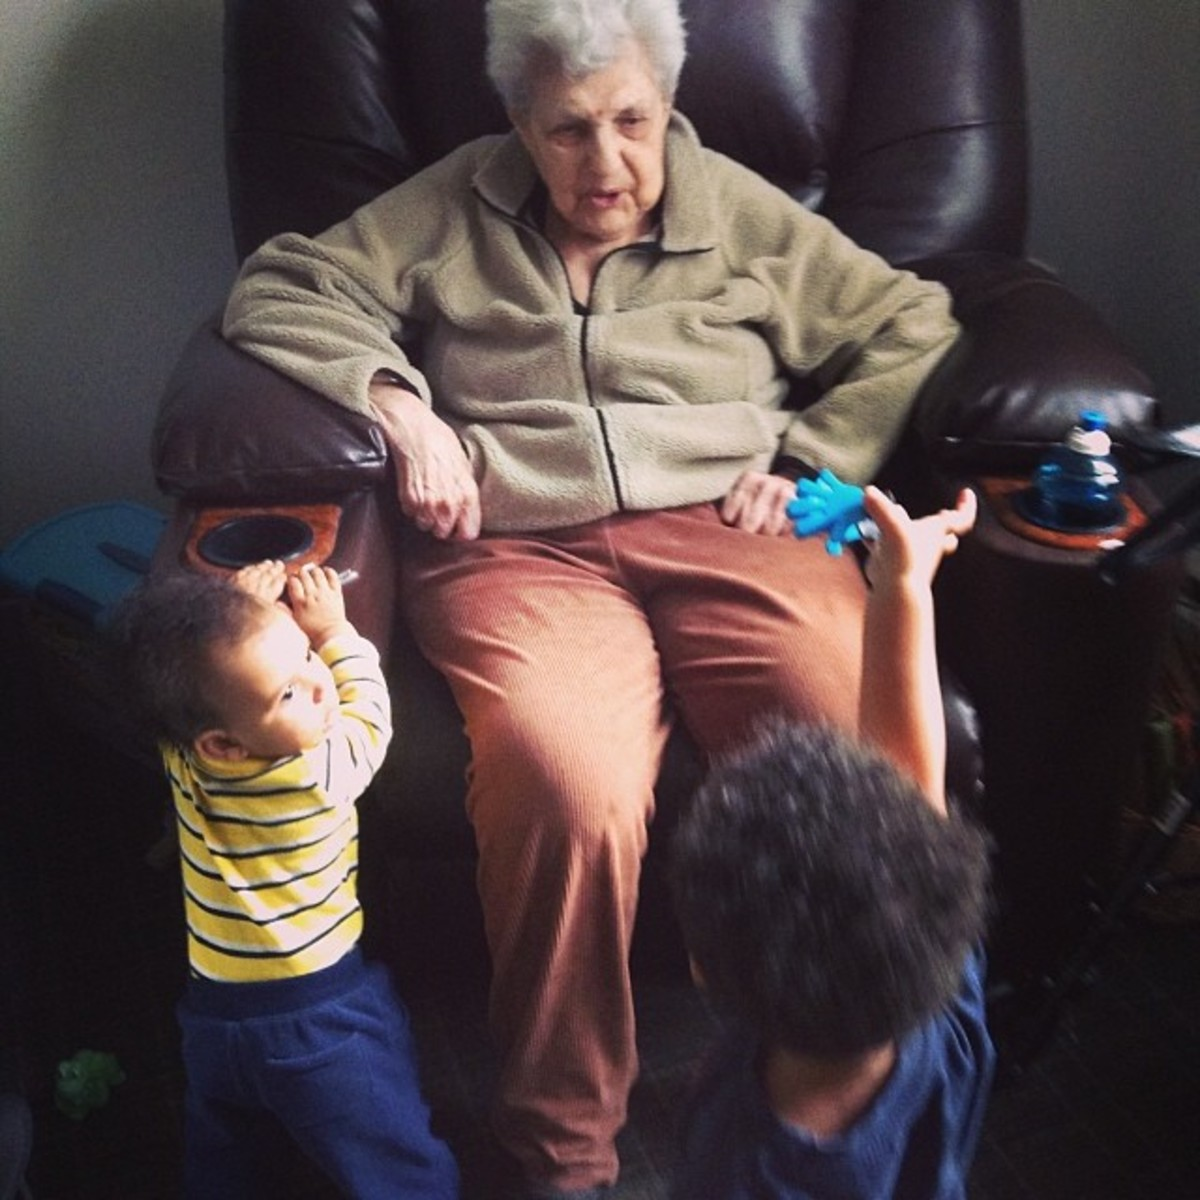 Being close to family, especially great-grandma, is a must.